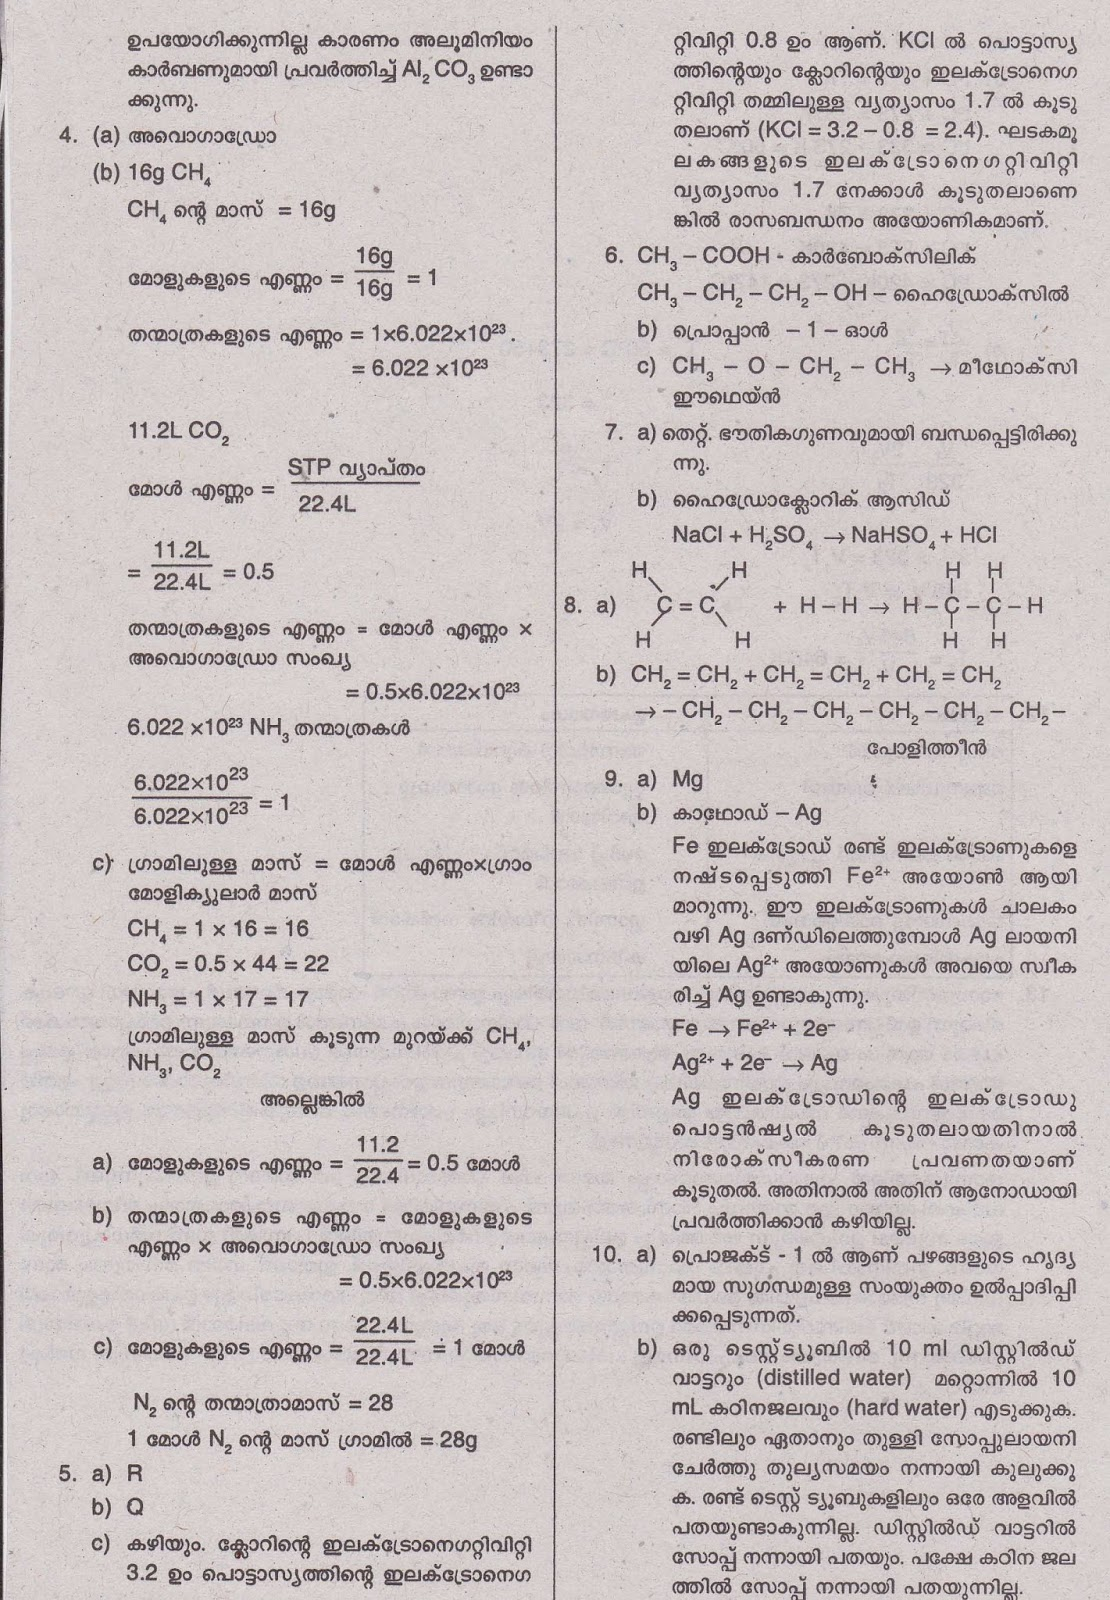 sslc model papers Tamilnadu 10th public exam question papers, sslc model question papers,10th model question papers,10th public exam question papers,10th sslc tamilnadu qa.